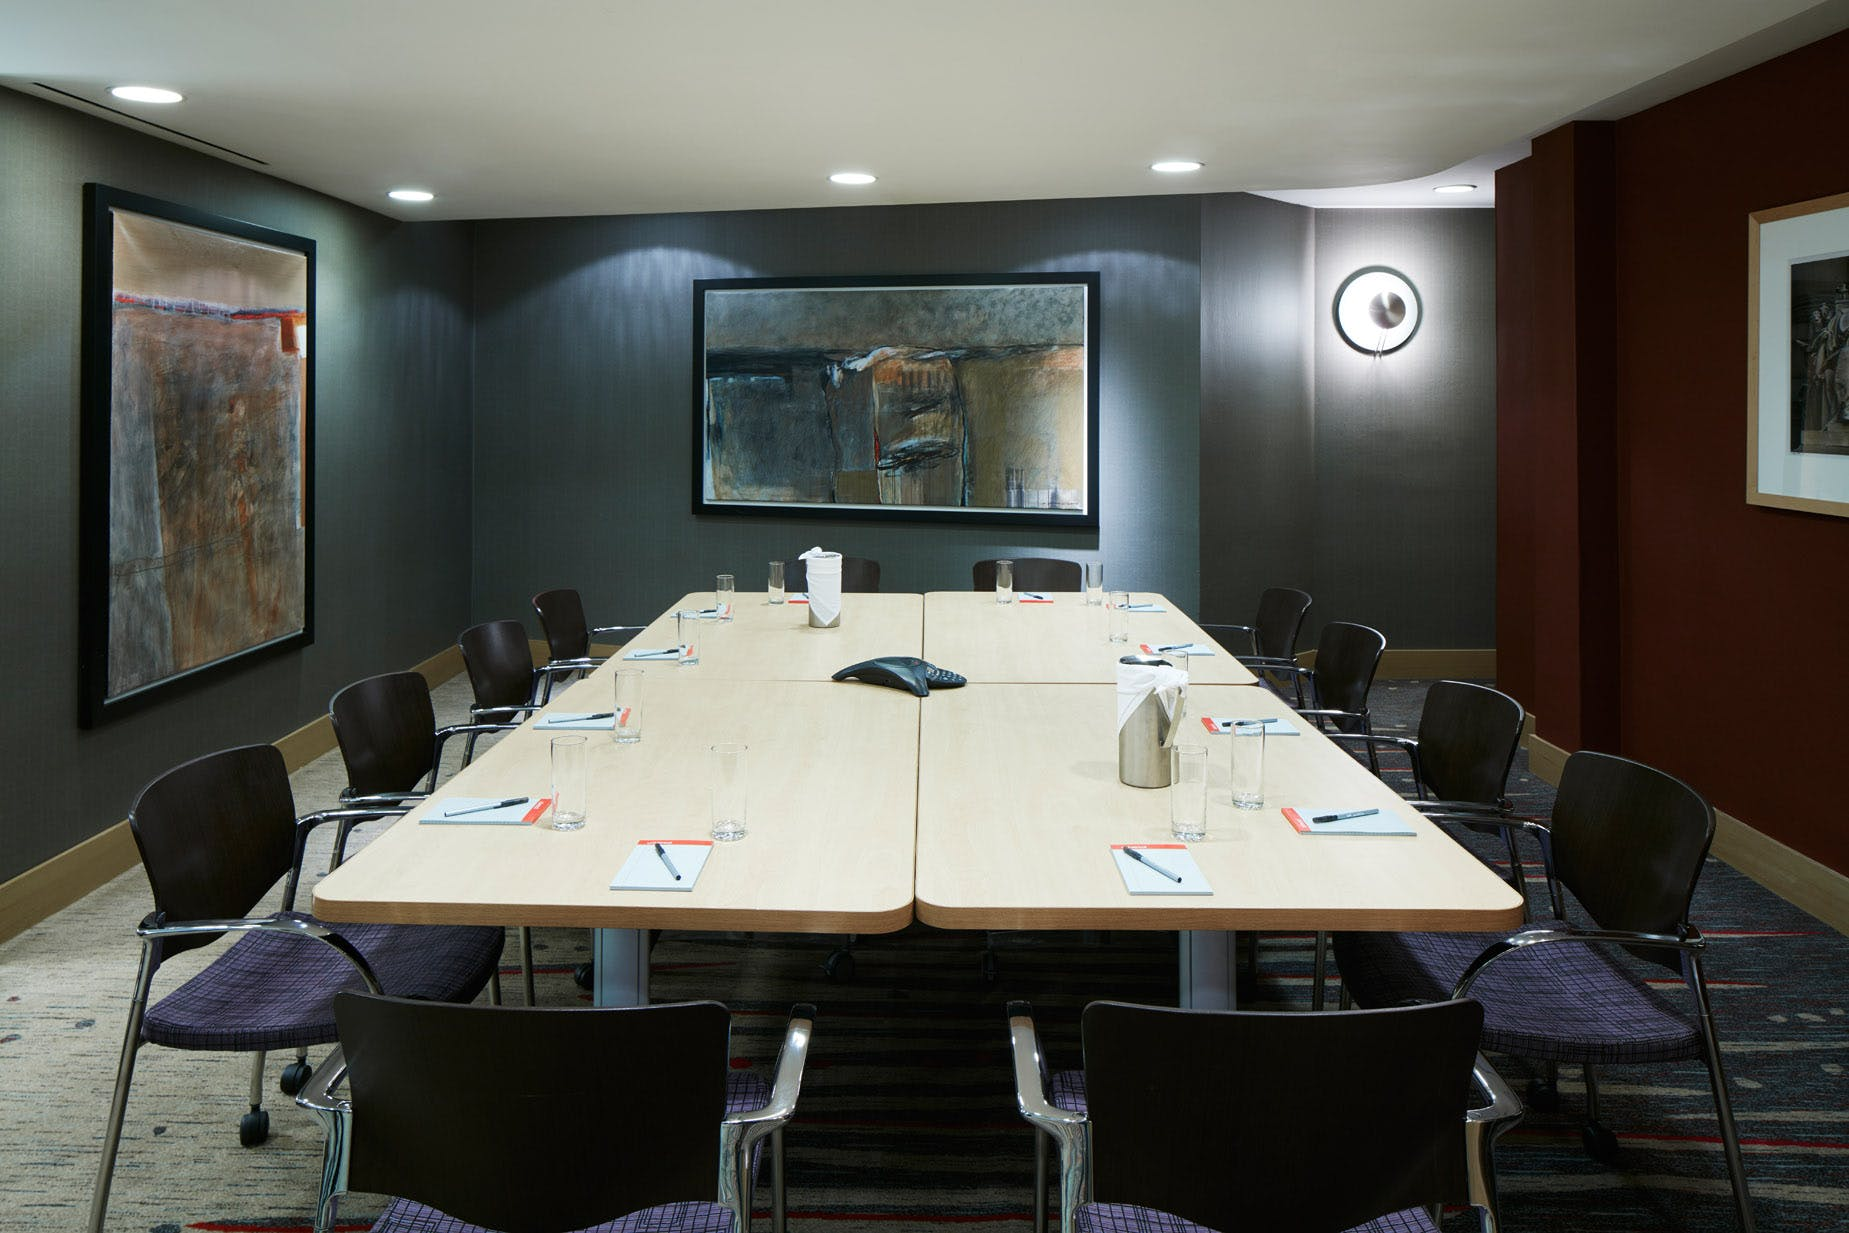 Meeting Room at Club Quarters Hotel, World Trade Center